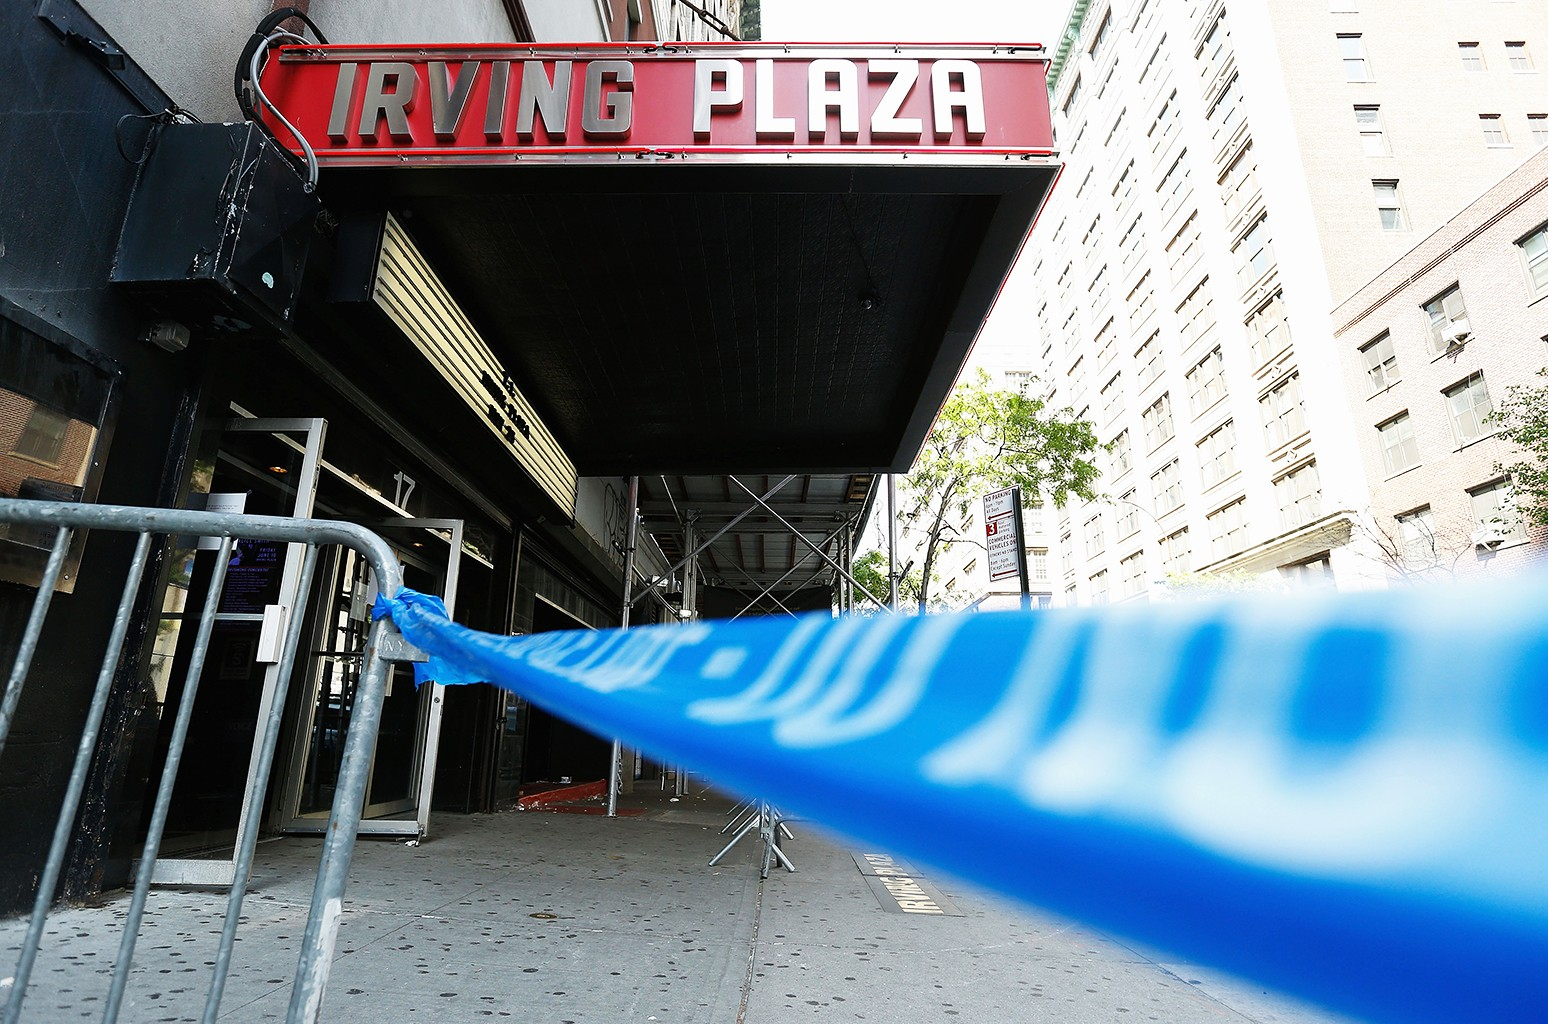 Irving Plaza photographed on May 26, 2016 in New York City.